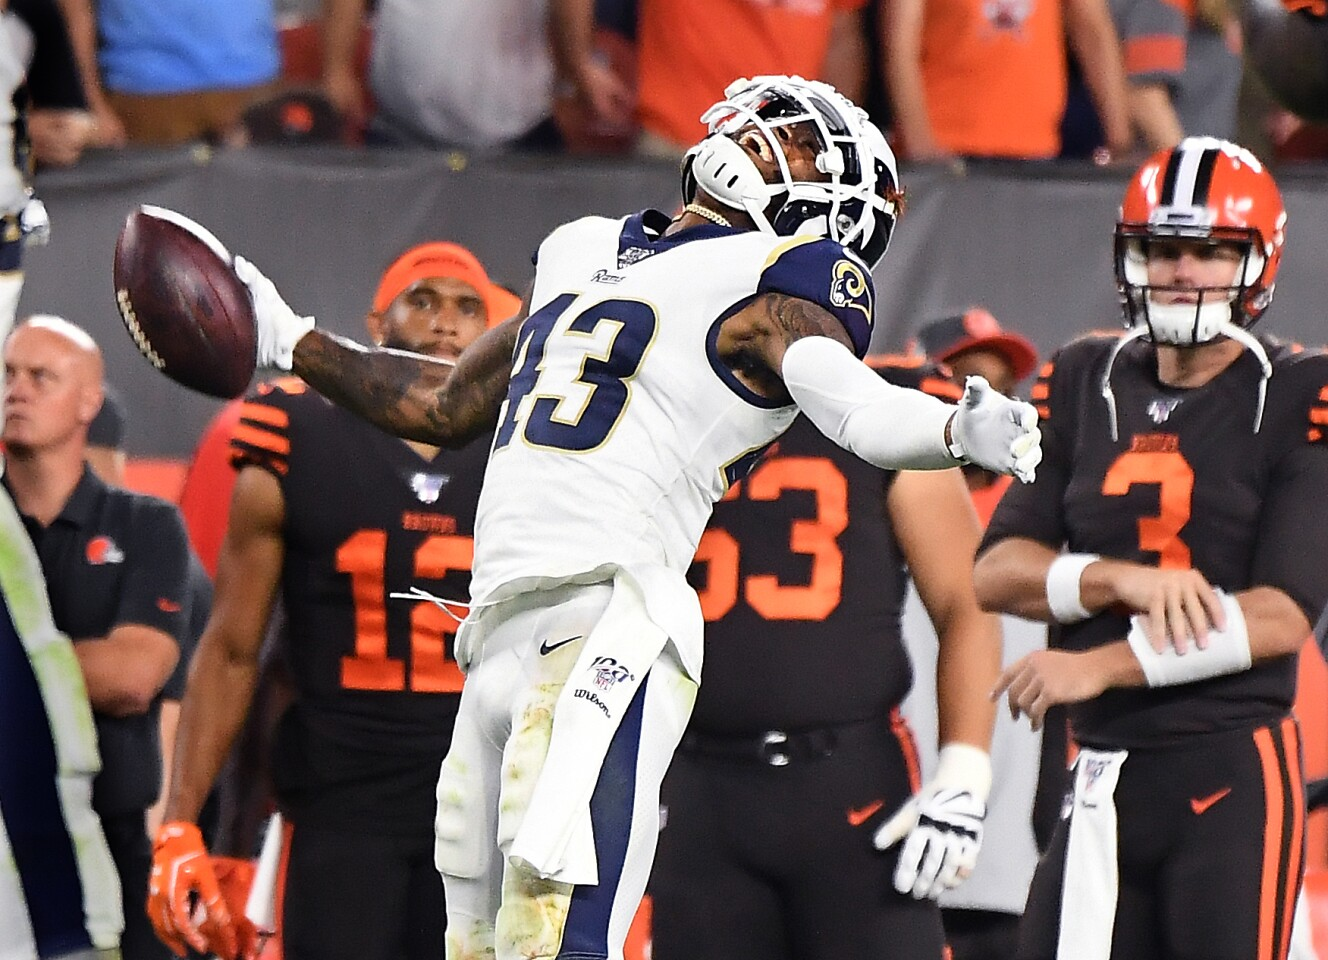 CLEVELAND, OHIO SEPTEMBER 22, 2019-Rams safety John Johnson celebrates his interception inthe end zone to seal the game against the Browns inthe 4th quarter at First Energy Stadium in Cleveland Sunday. (Wally Skalij/Los Angeles Times)